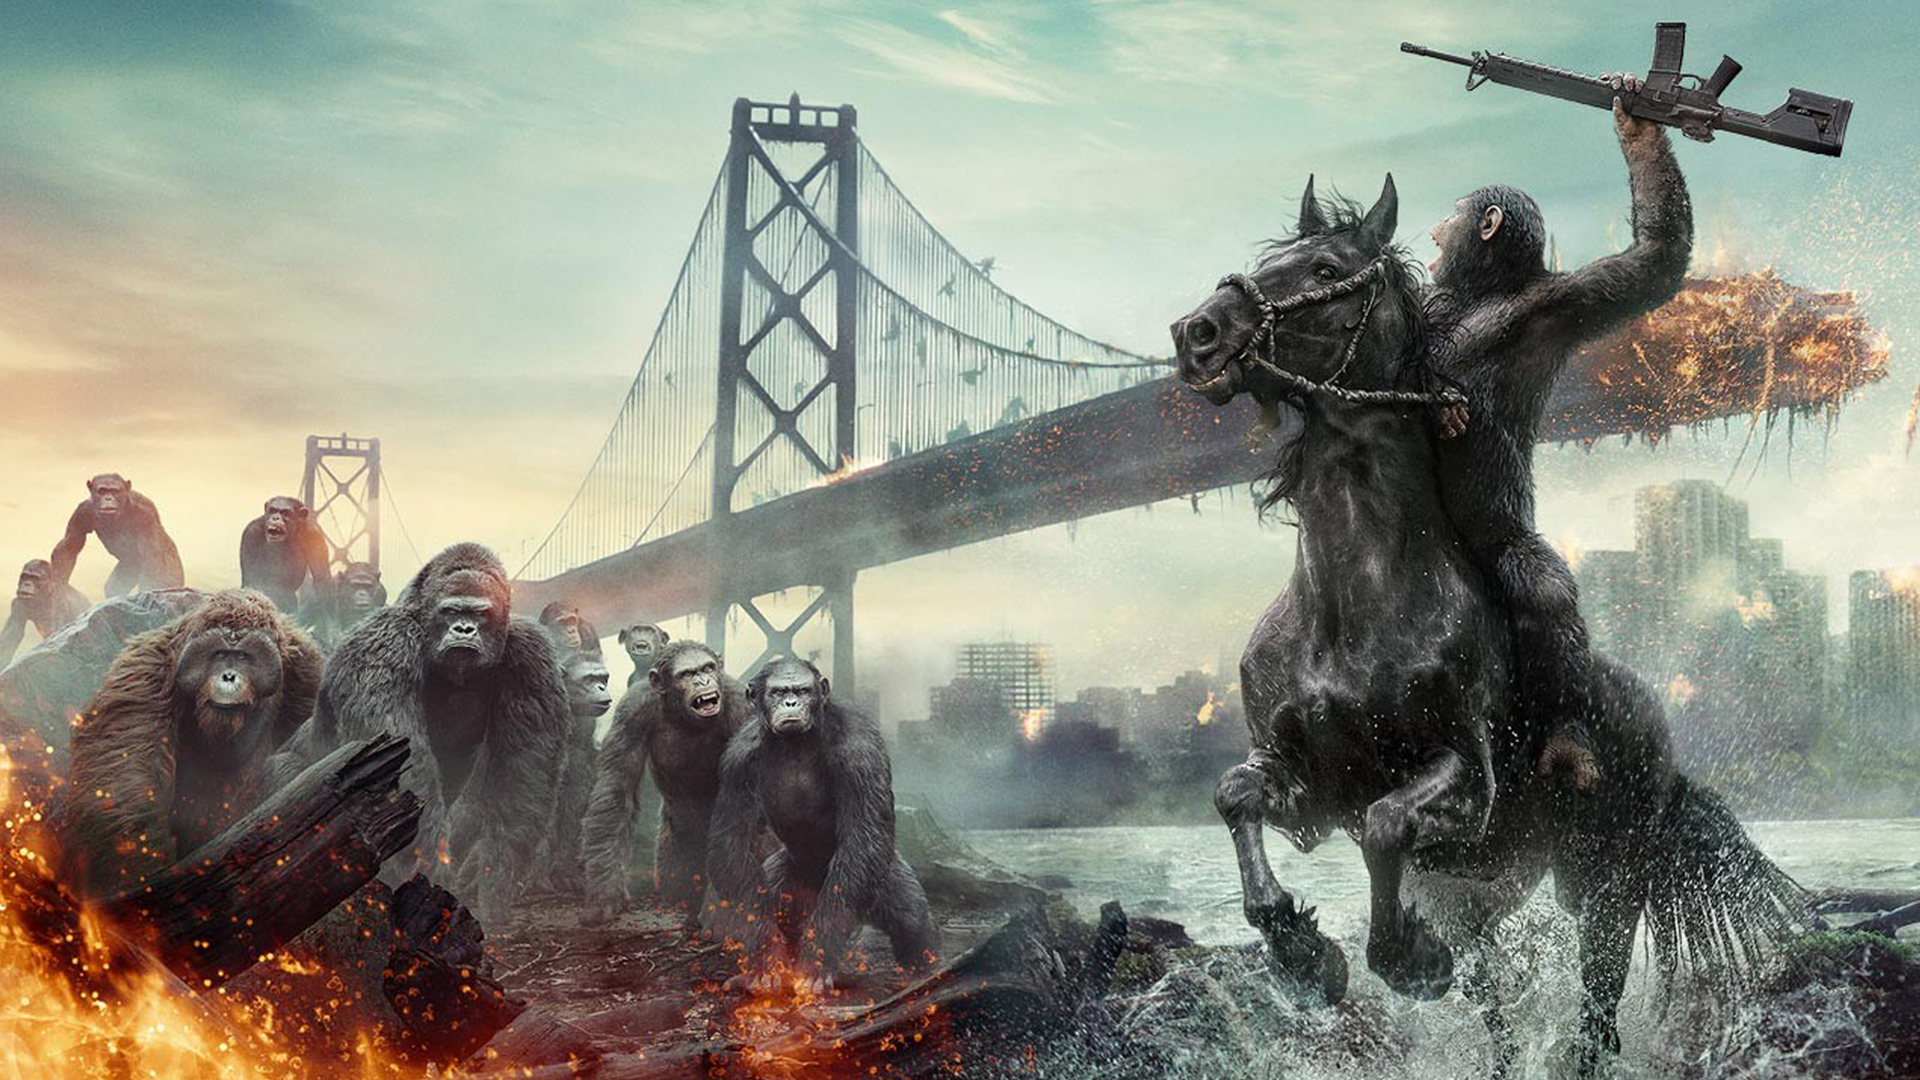 Dawn Of The Planet Of The Apes Wallpaper 1920x1080 By Sachso74 On